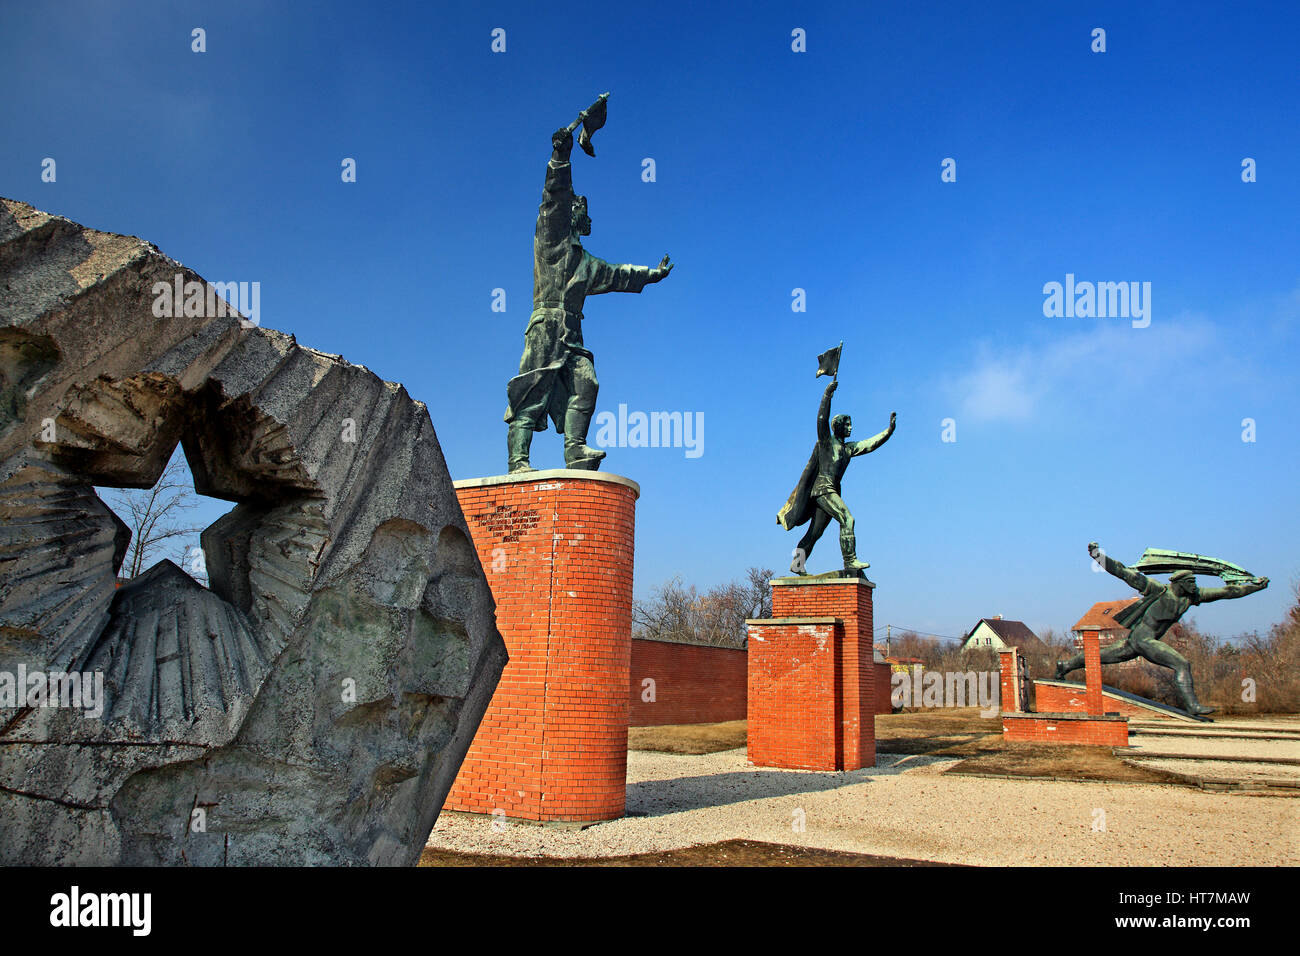 Statues of the Communist Era (examples of the 'socialist reallism') in the Memento Park, an open-air museum - Stock Image